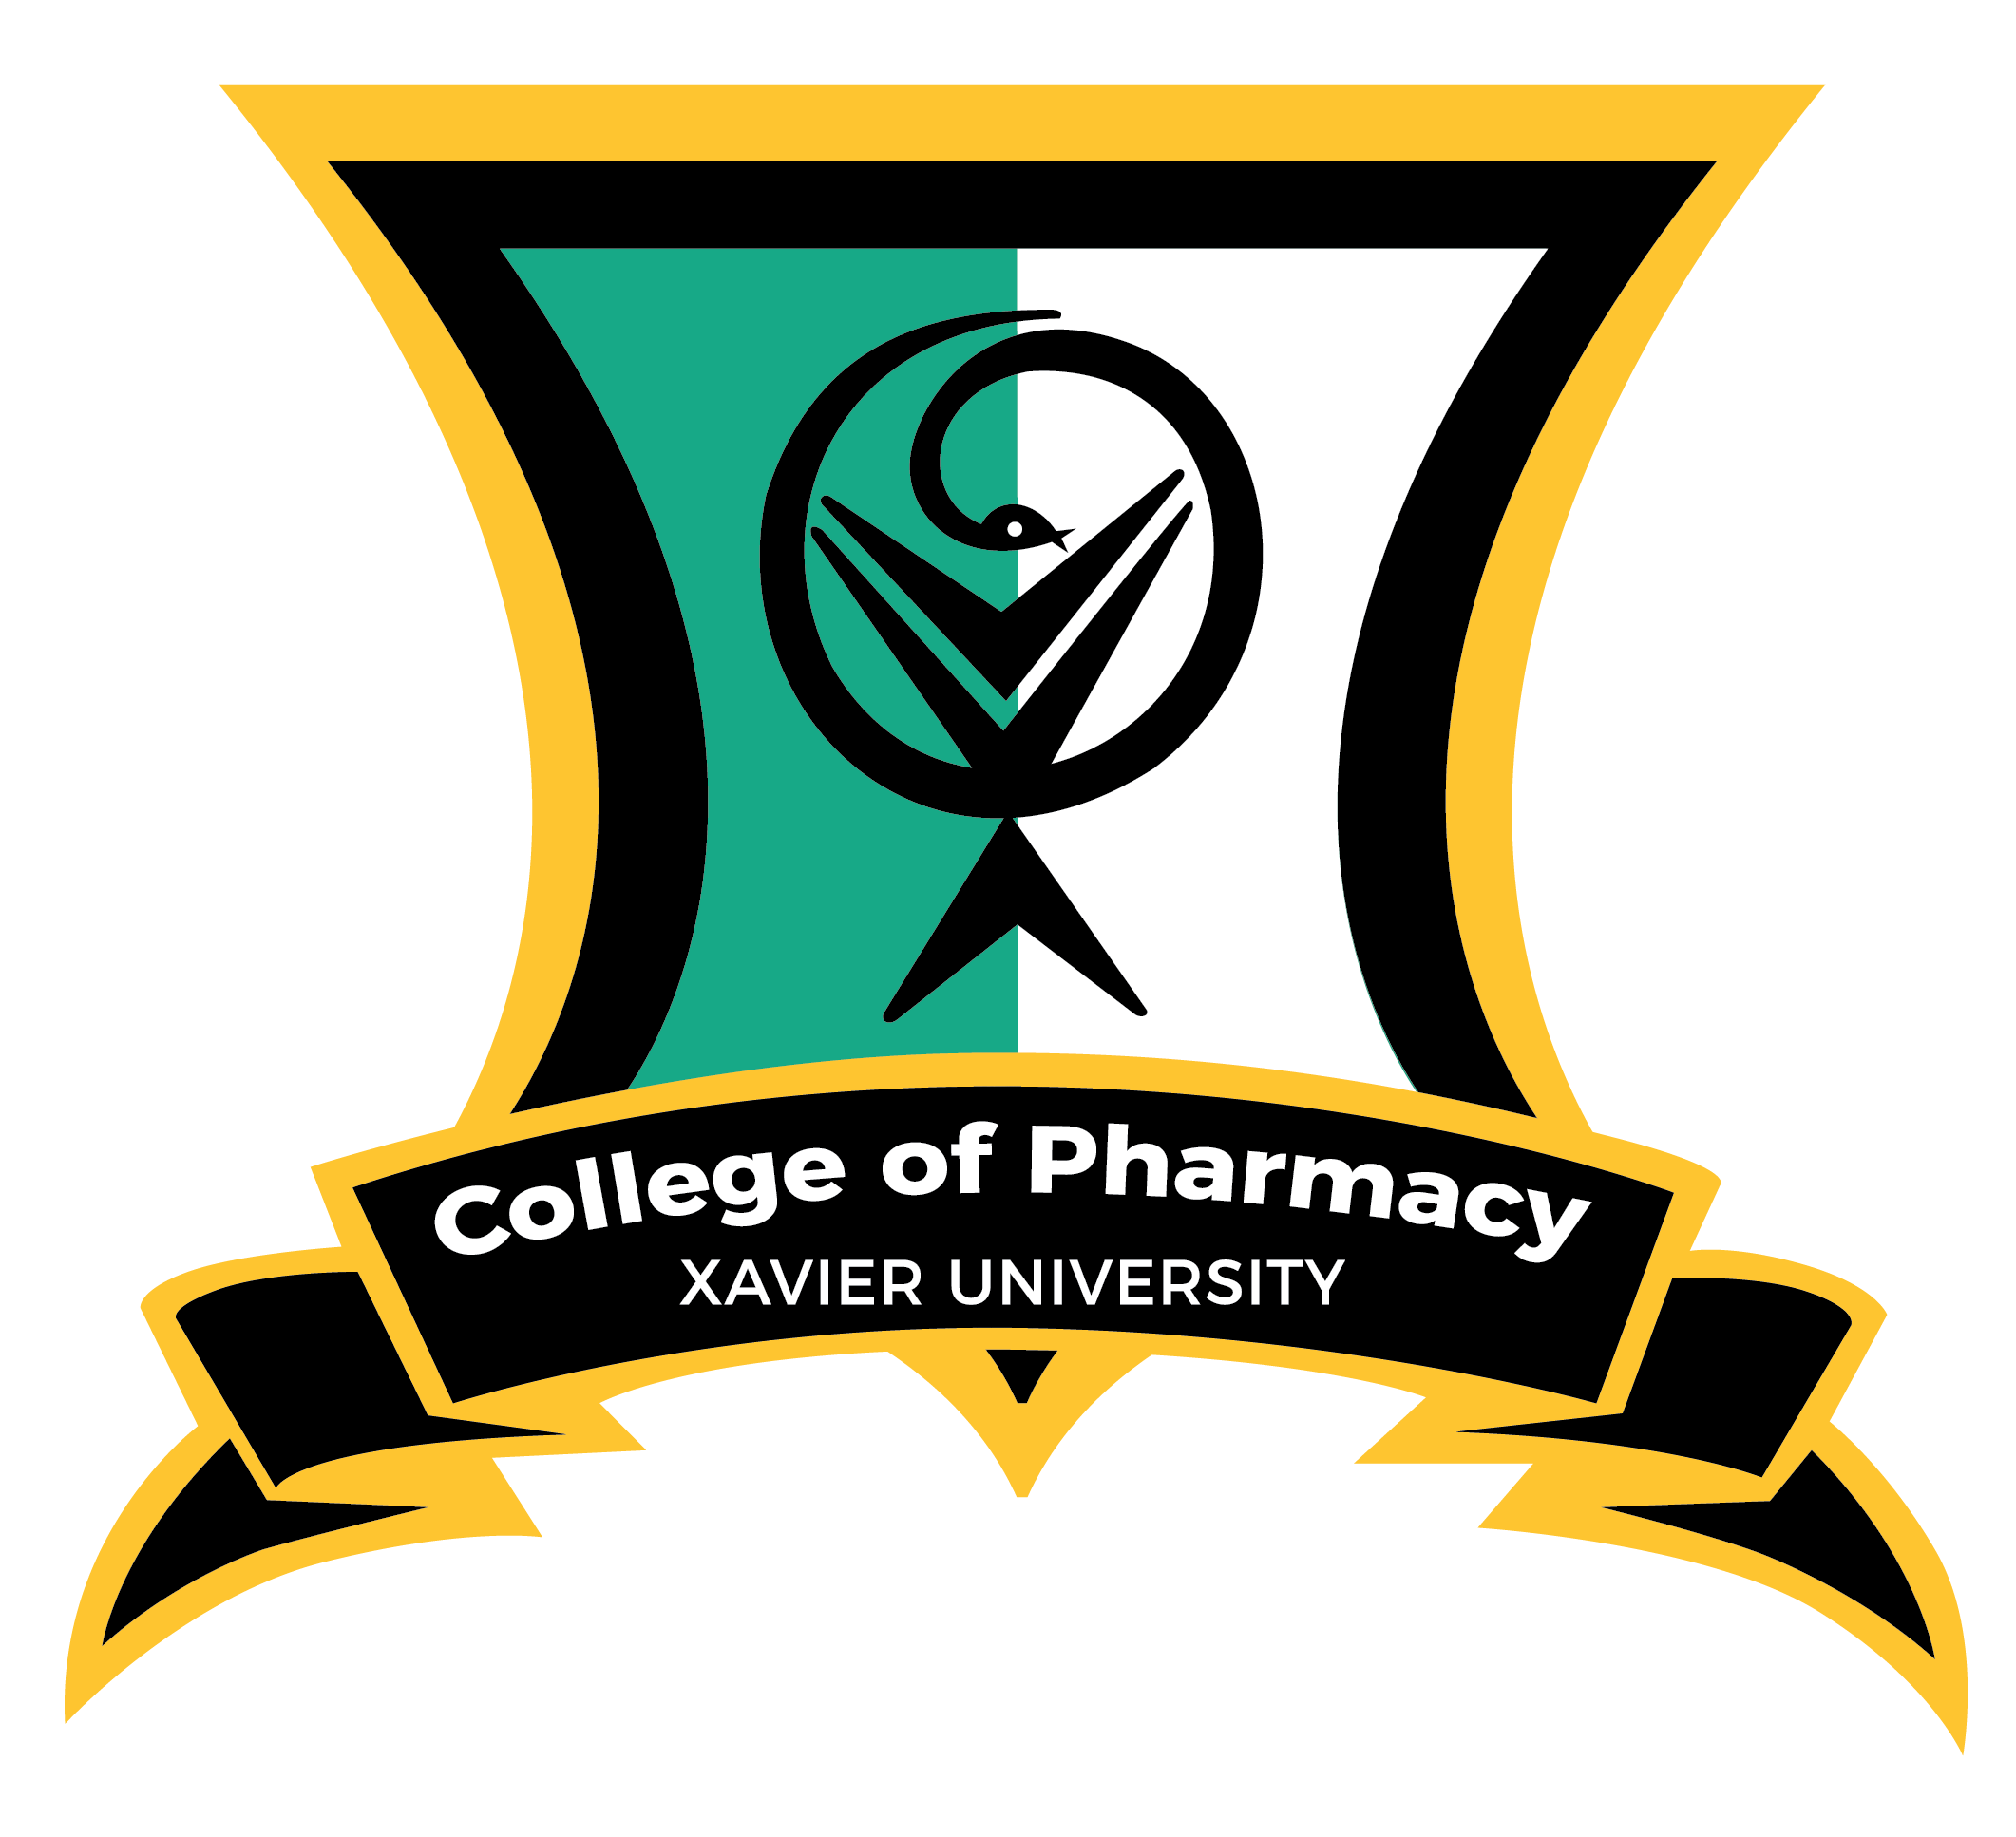 Xavier University of Louisiana College of Pharmacy